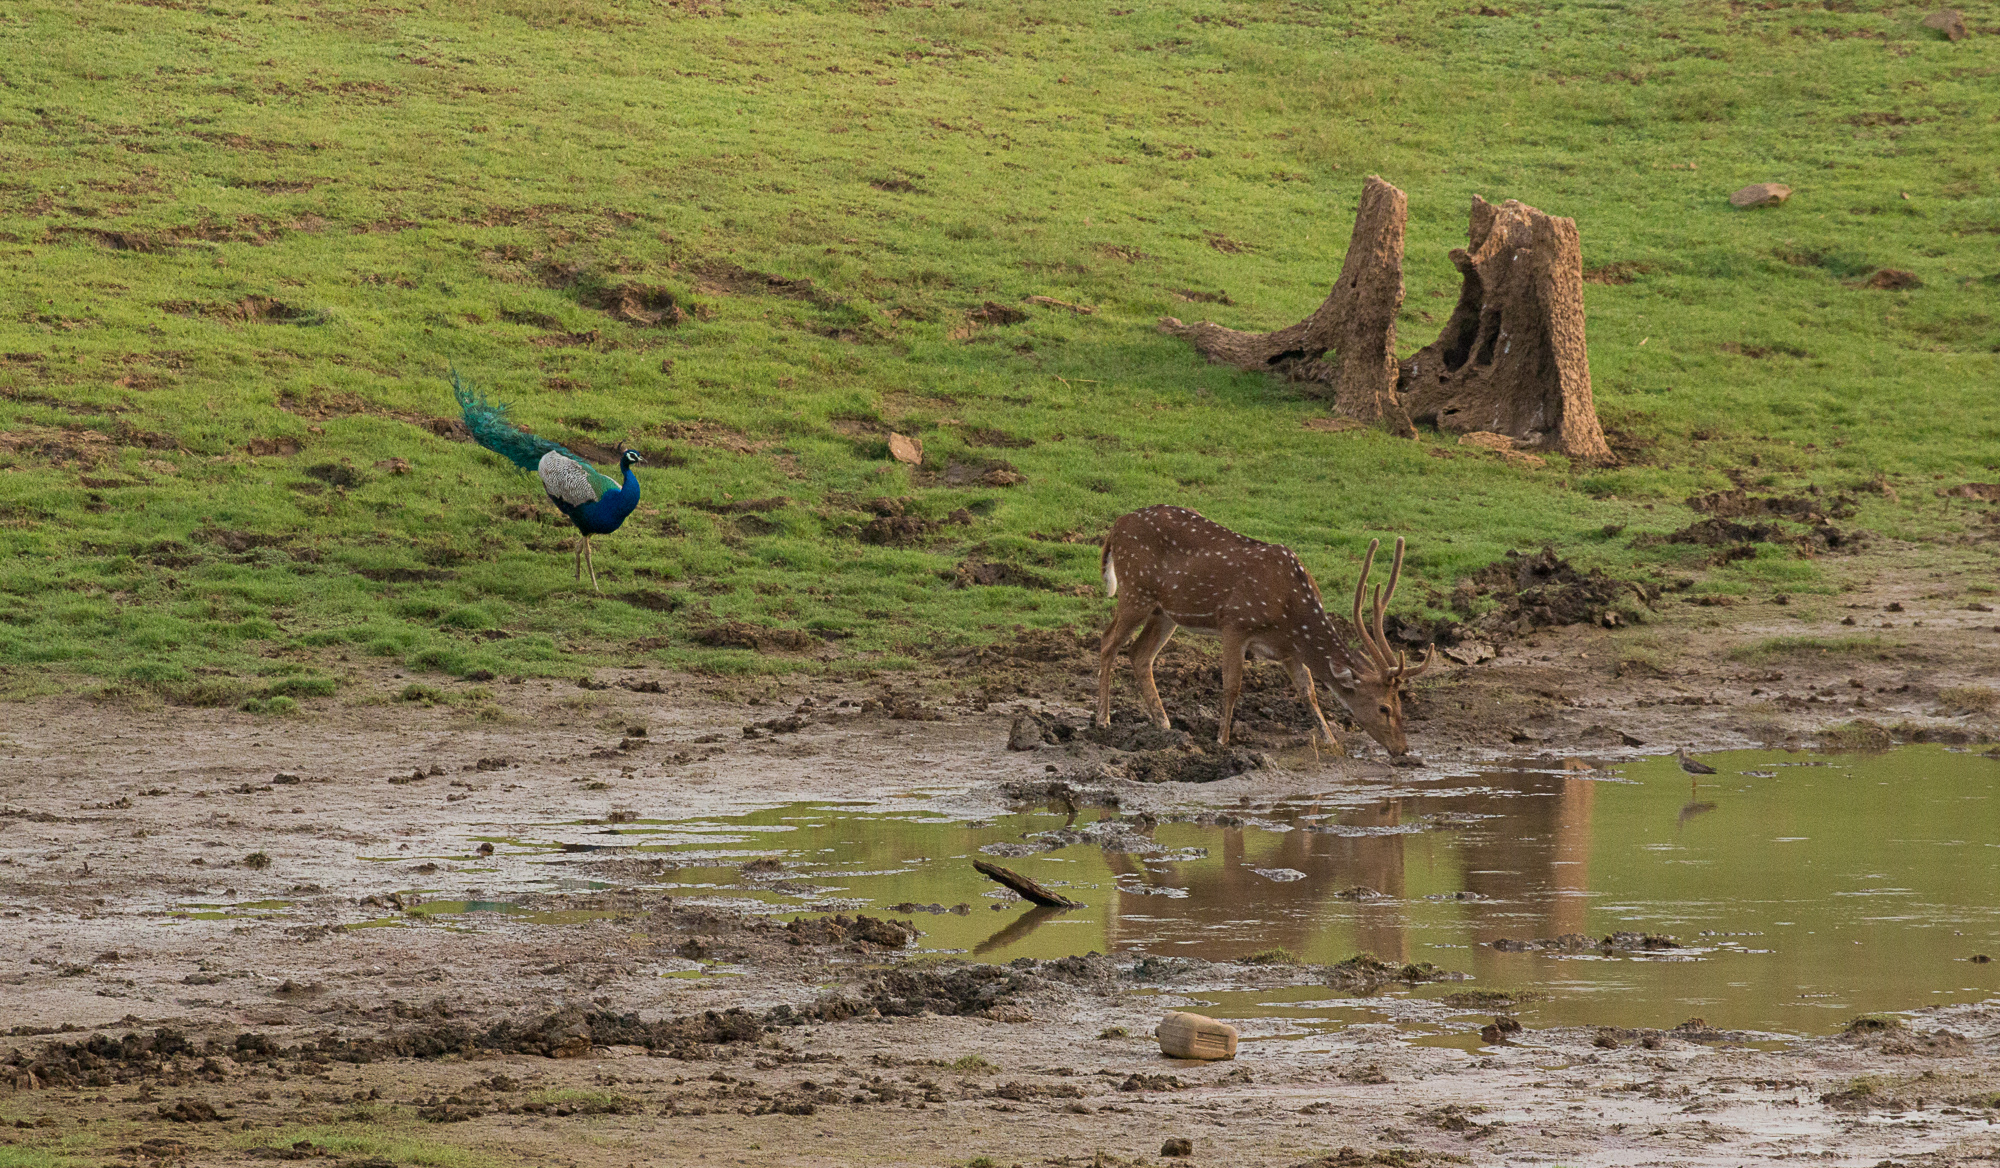 Spotted deer drinking the water while peacok is waiting for the turn, From nagarhole